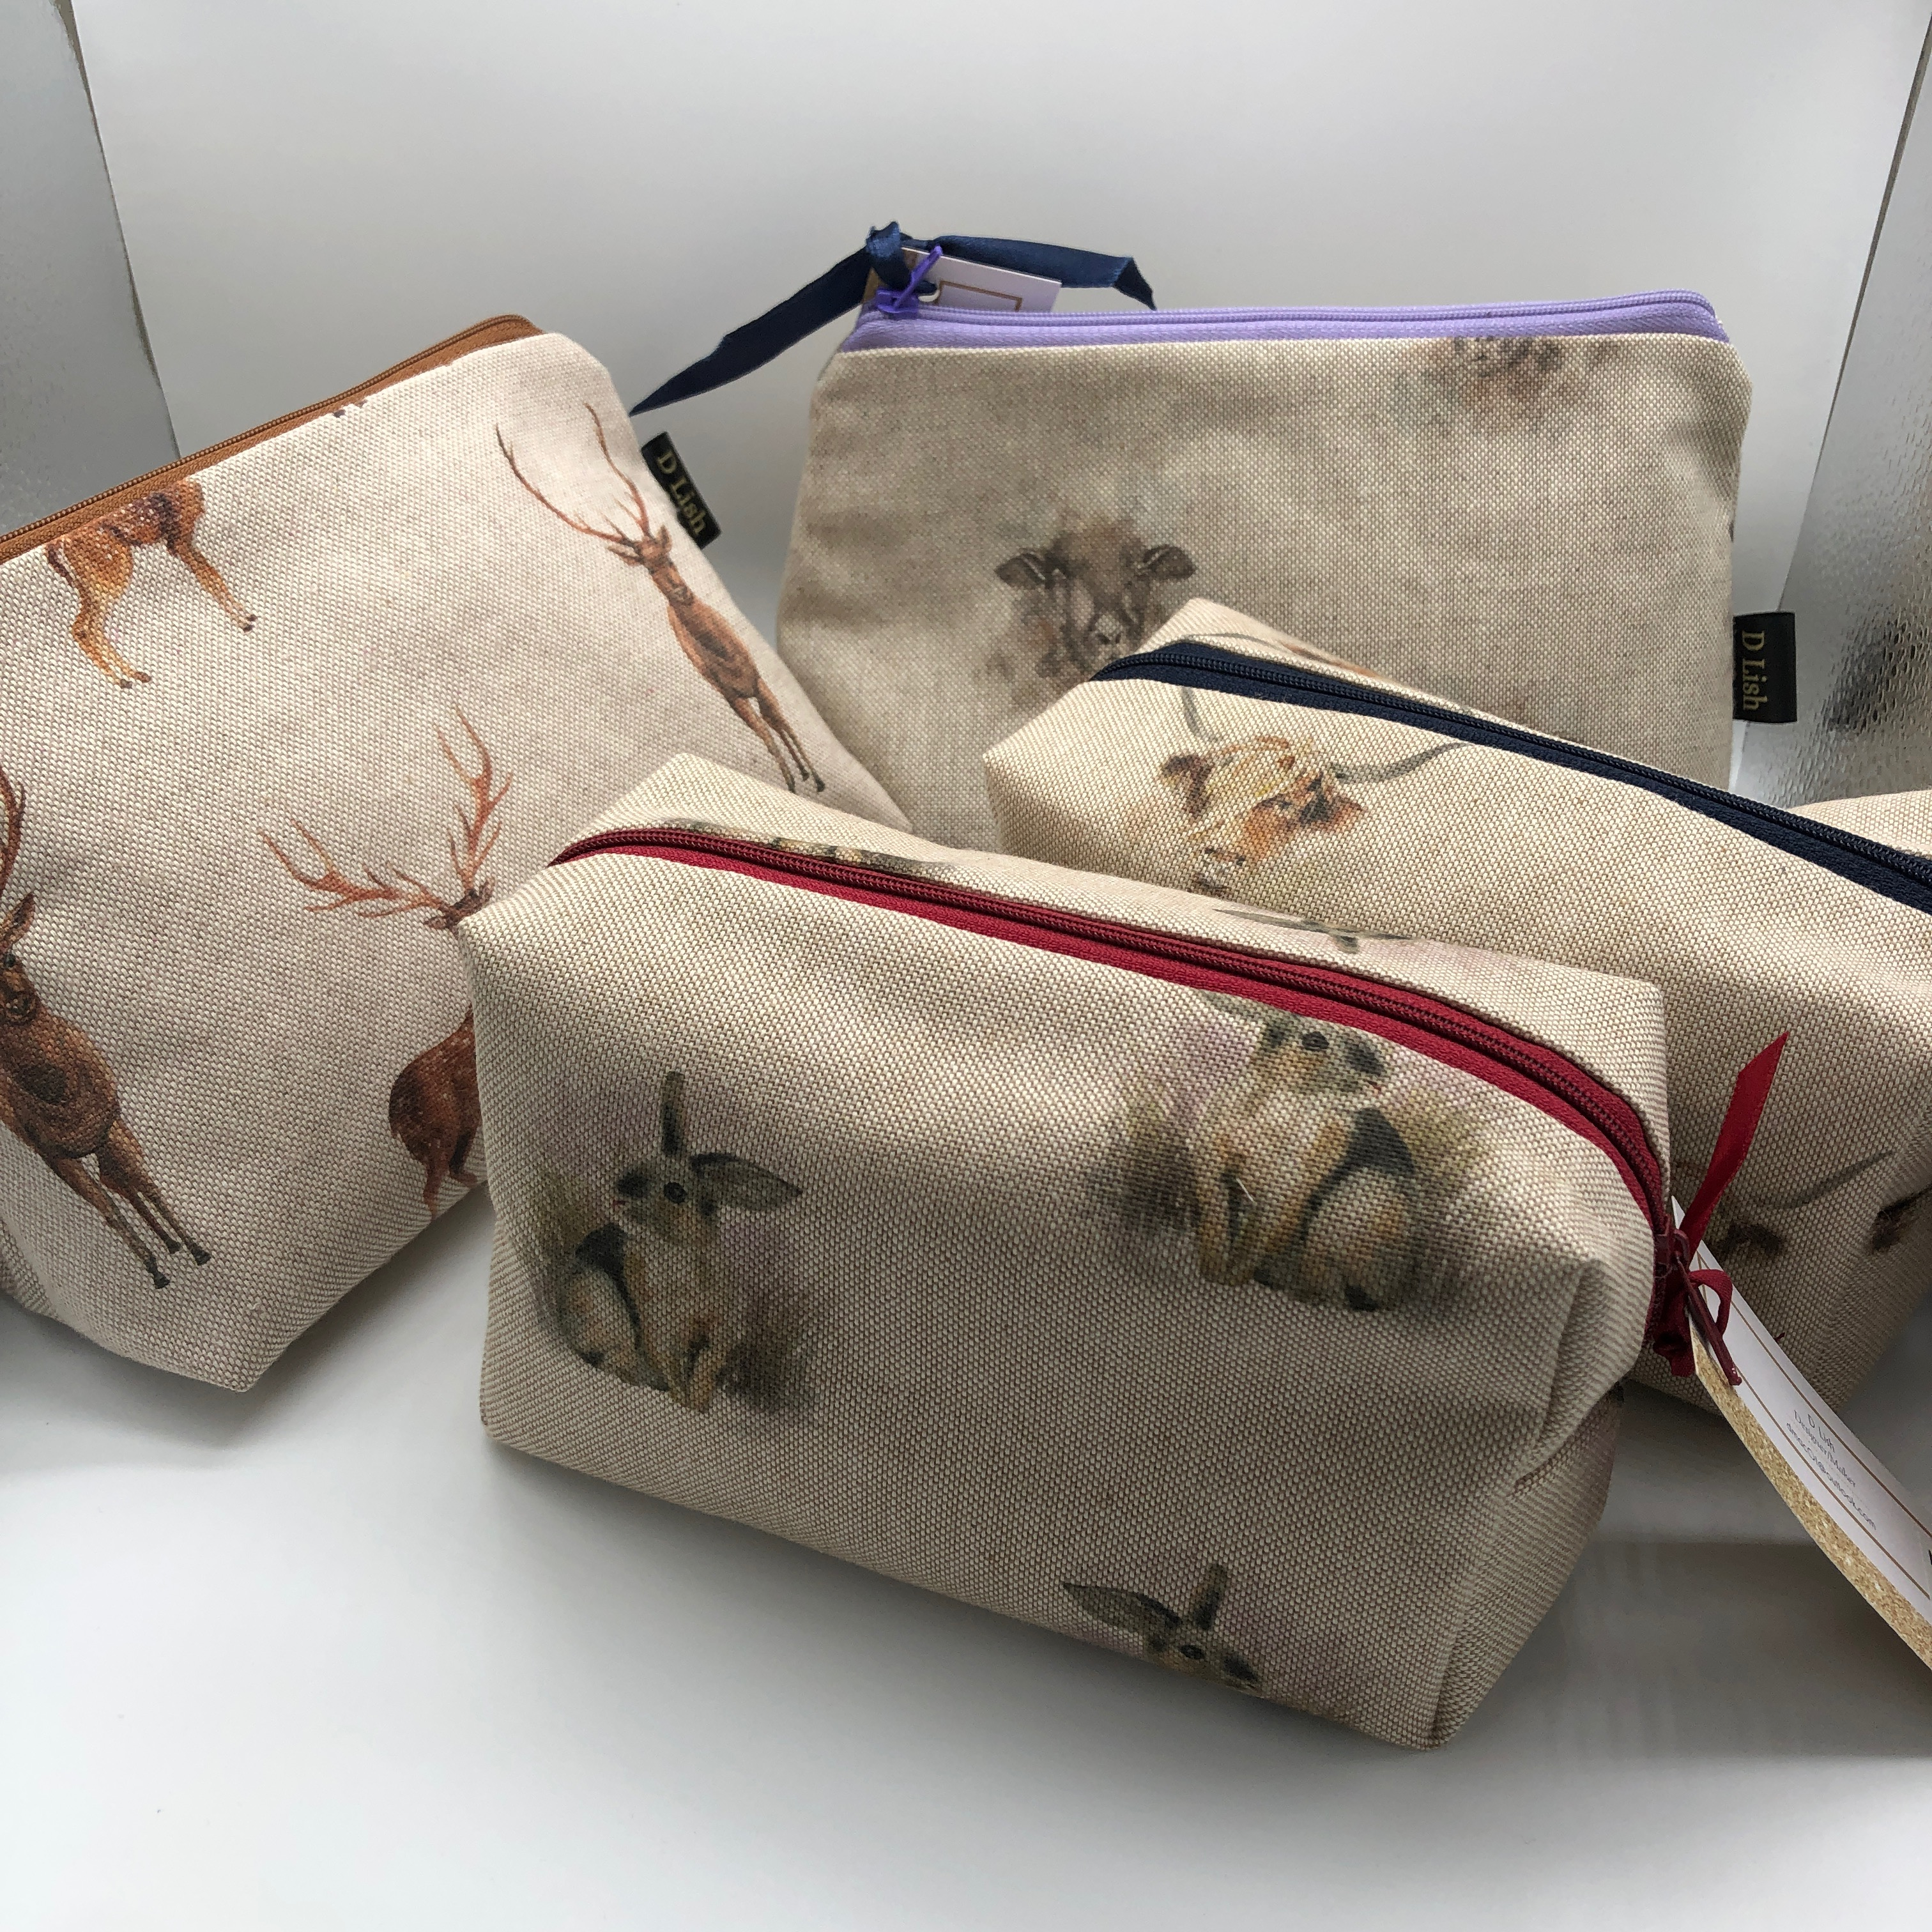 D-Lish Cosmetic Bags